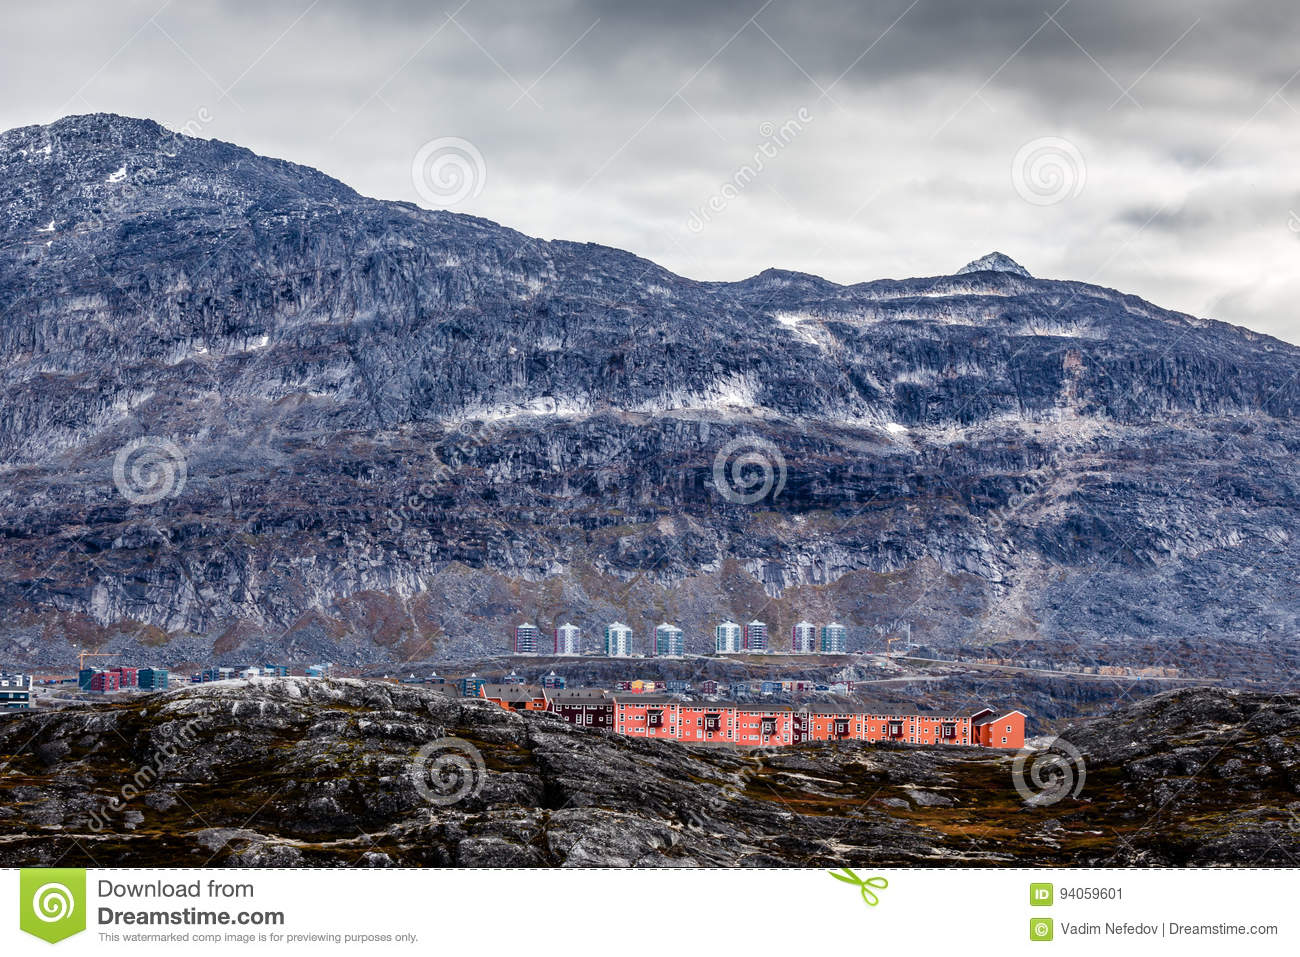 Rows of colorful modern Inuit houses among mossy stones with grey steep slopes of Little Malene mountain in